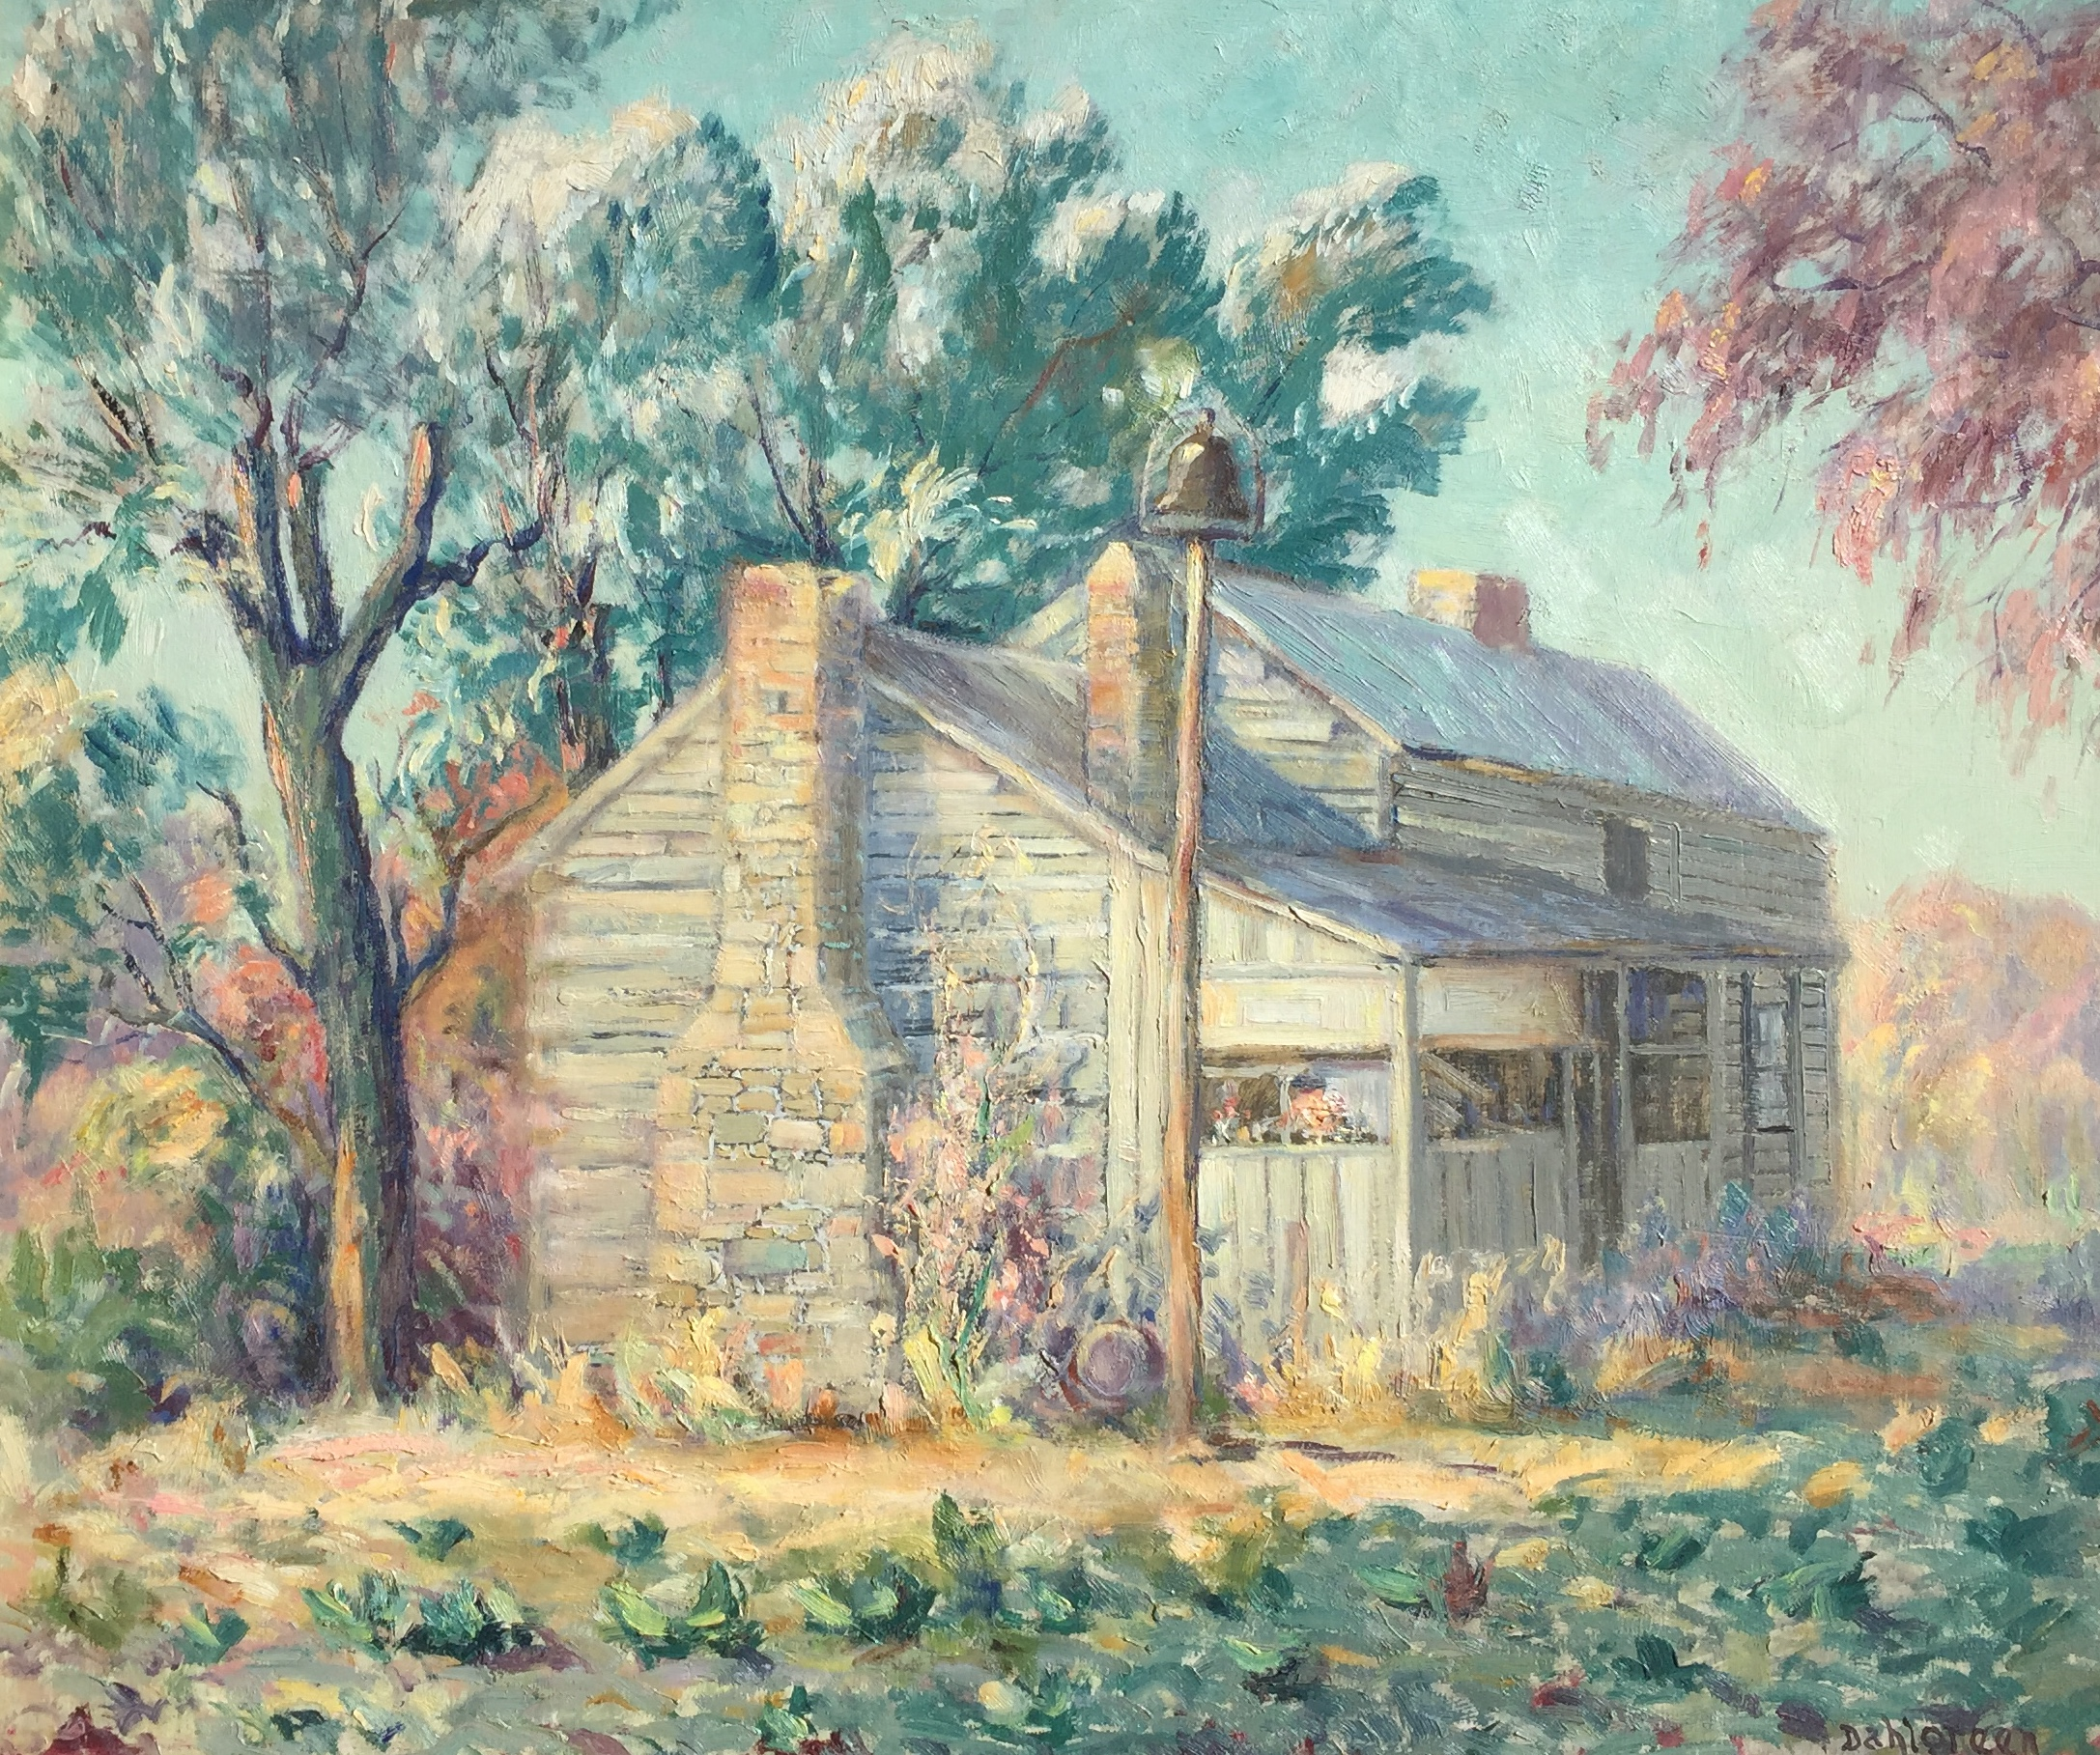 dahlgreen-theoldhomestead-cropped